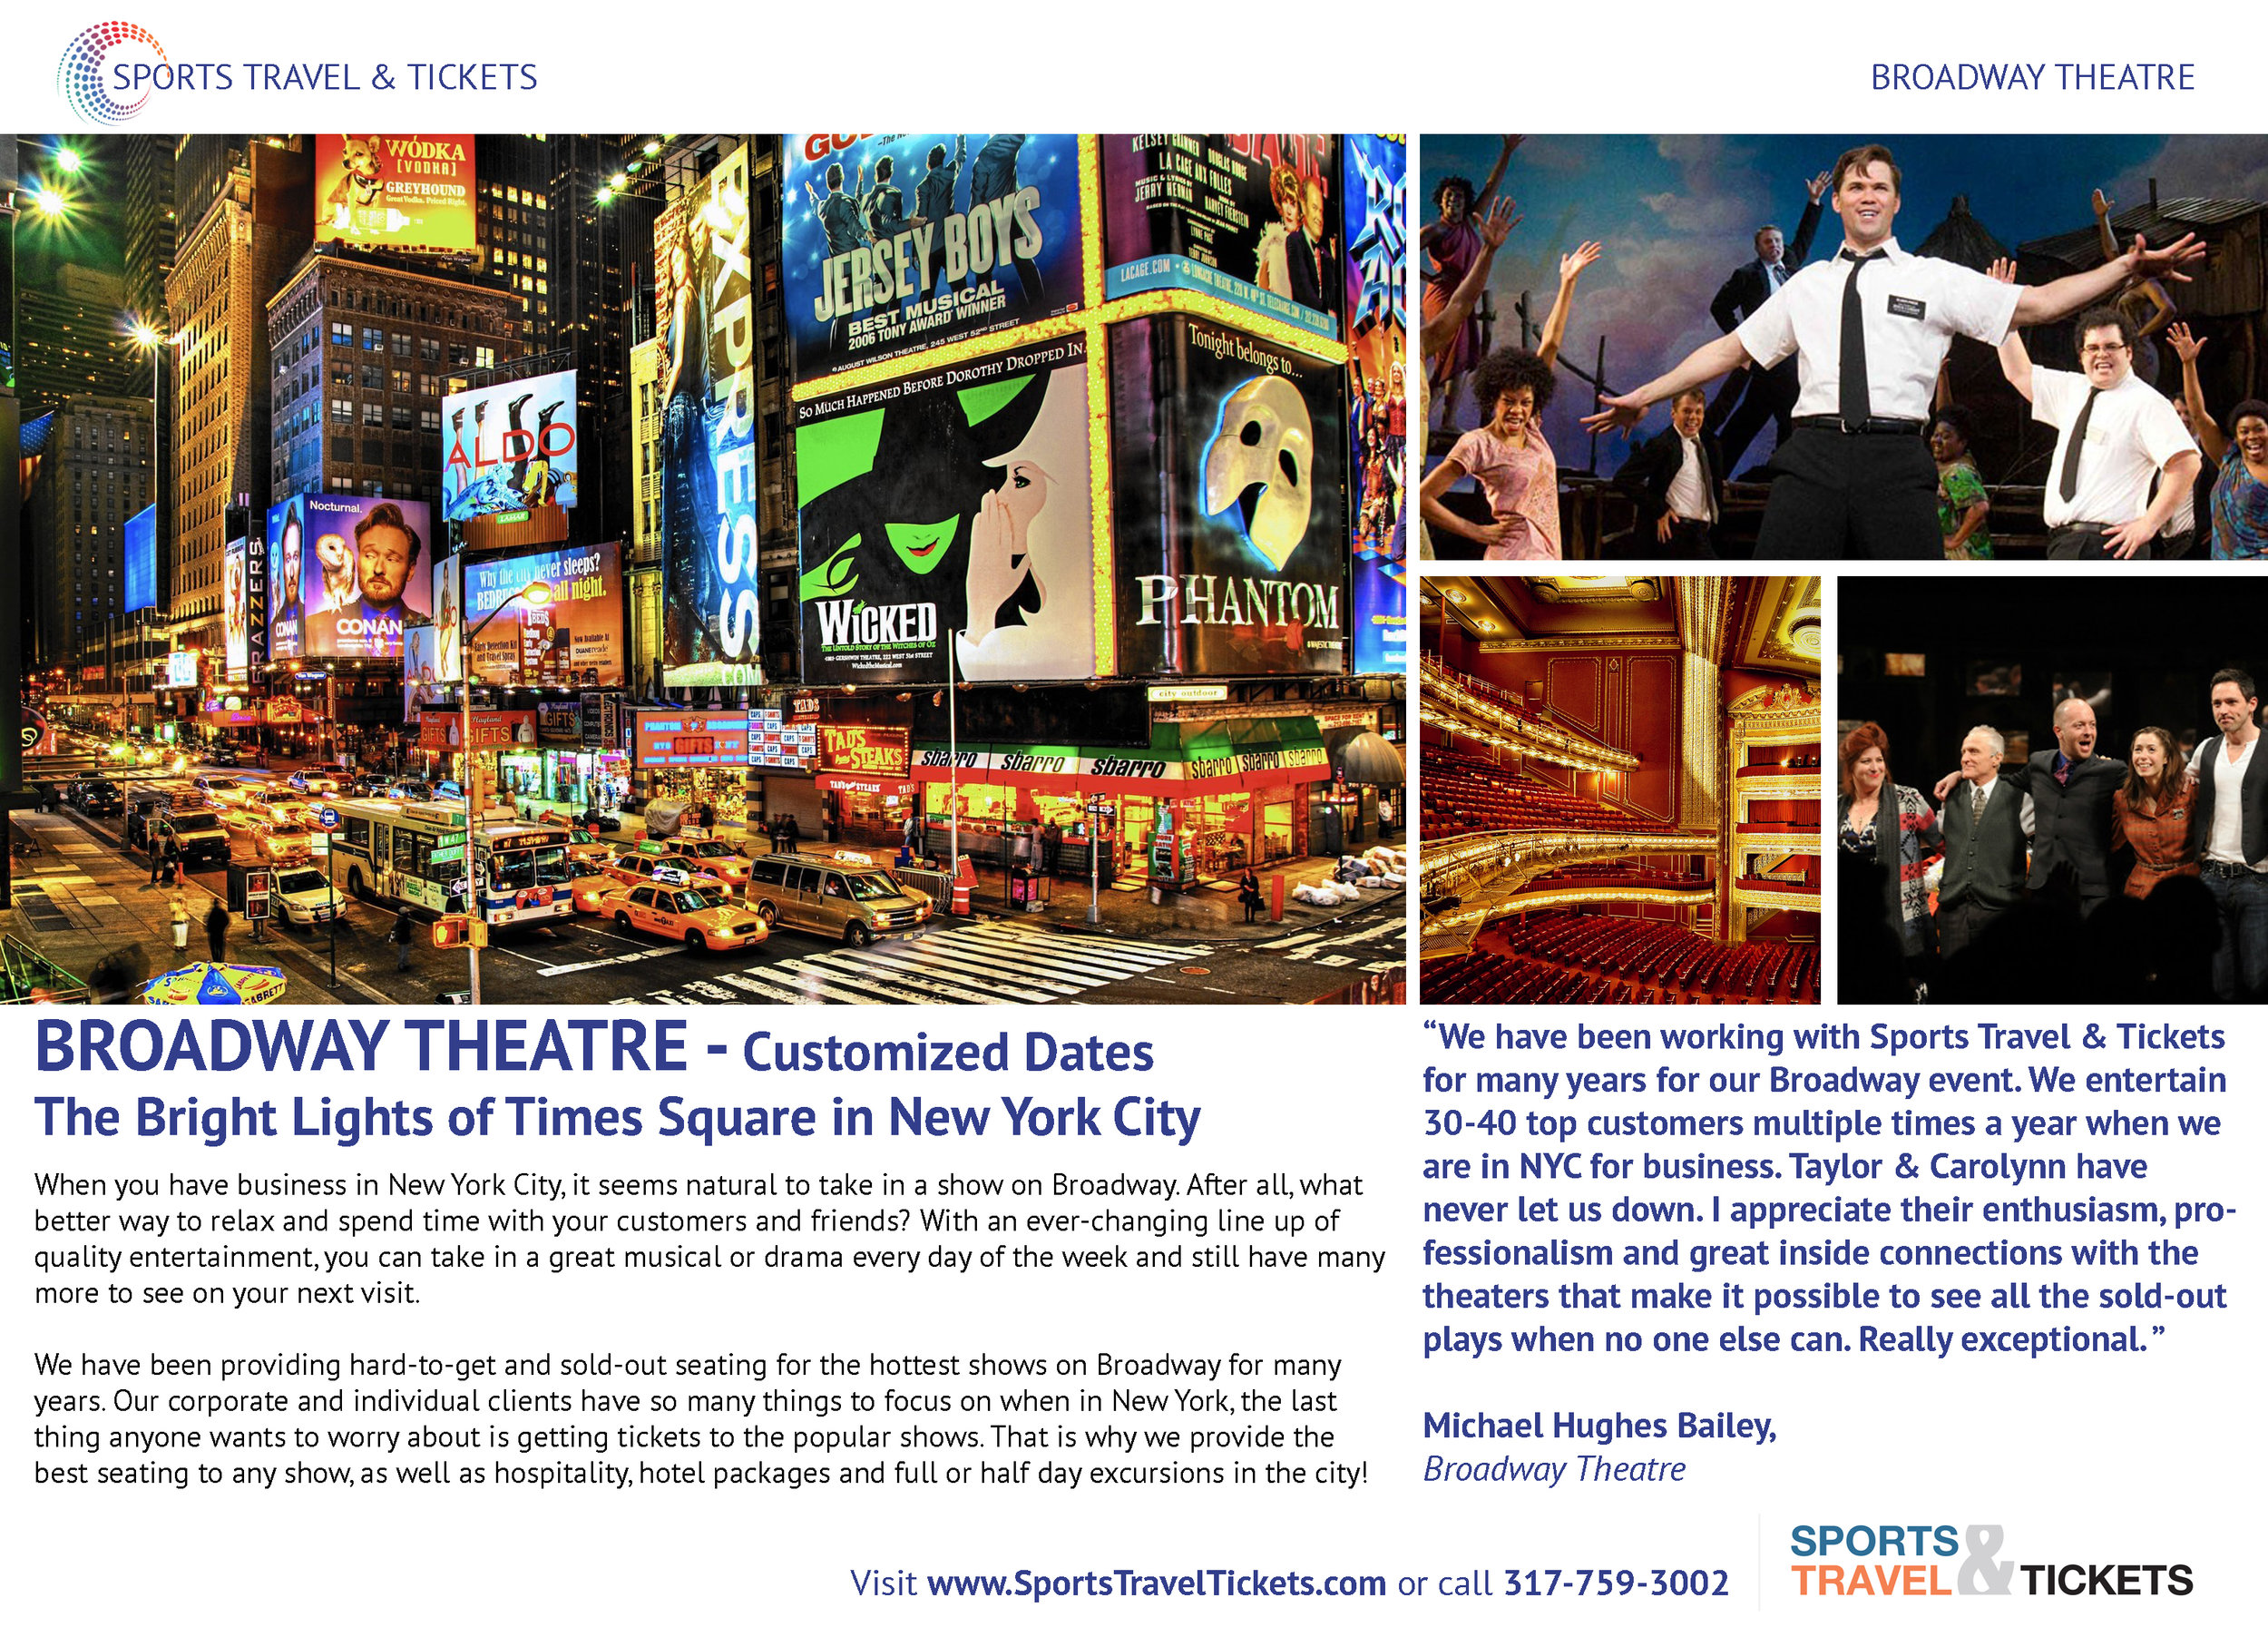 Sports Travel & Tickets Brochure Broadway theater tickets.jpg